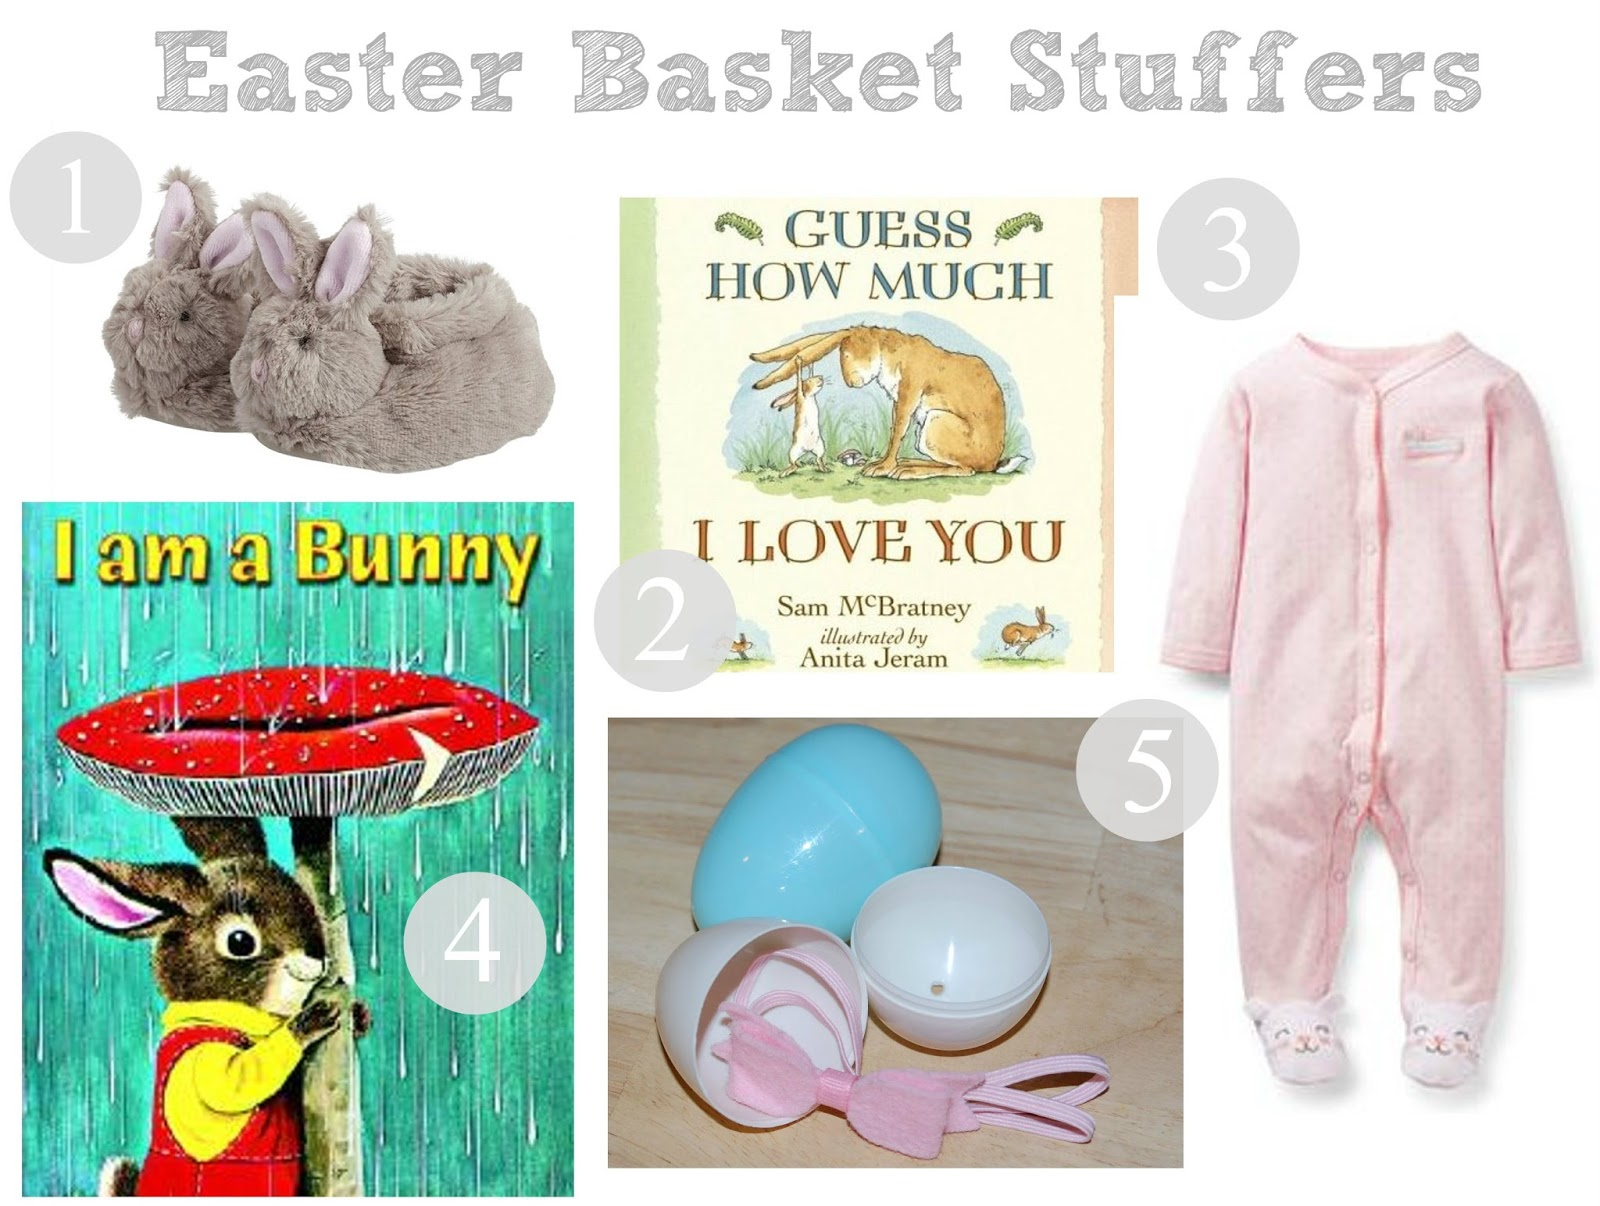 Whatever dee dee wants shes gonna get it girls easter basket 1 fury bunny slippers from pottery barn kids 2 guess how much i love you board book 3 new spring pajamas i love these easter pjs from carters negle Image collections